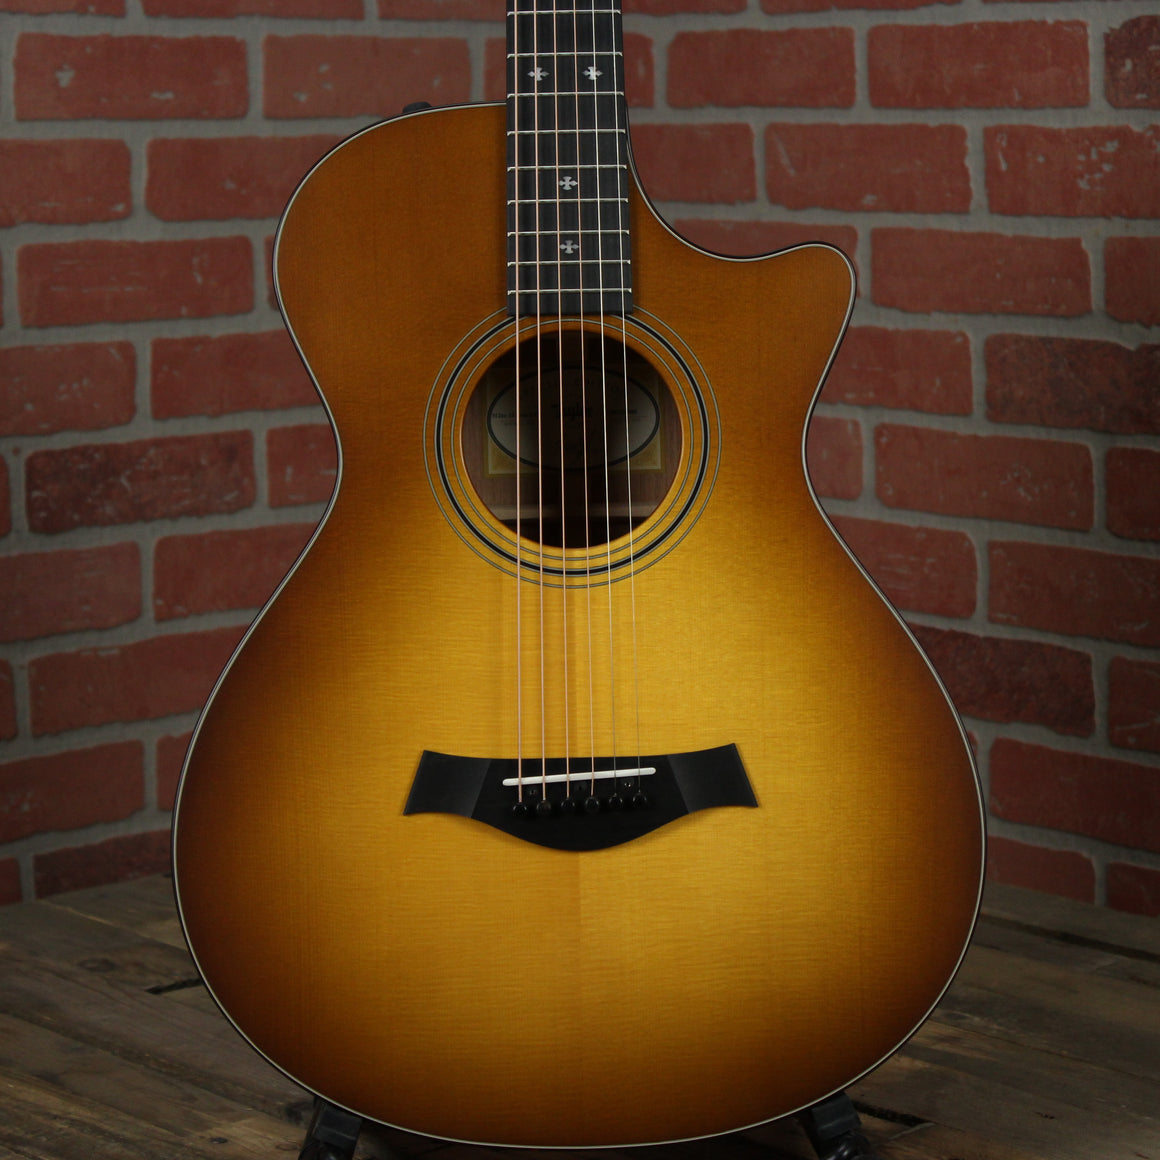 Taylor 312ce 12-Fret LTD - Satin Honey Sunburst and Shaded Edgeburst